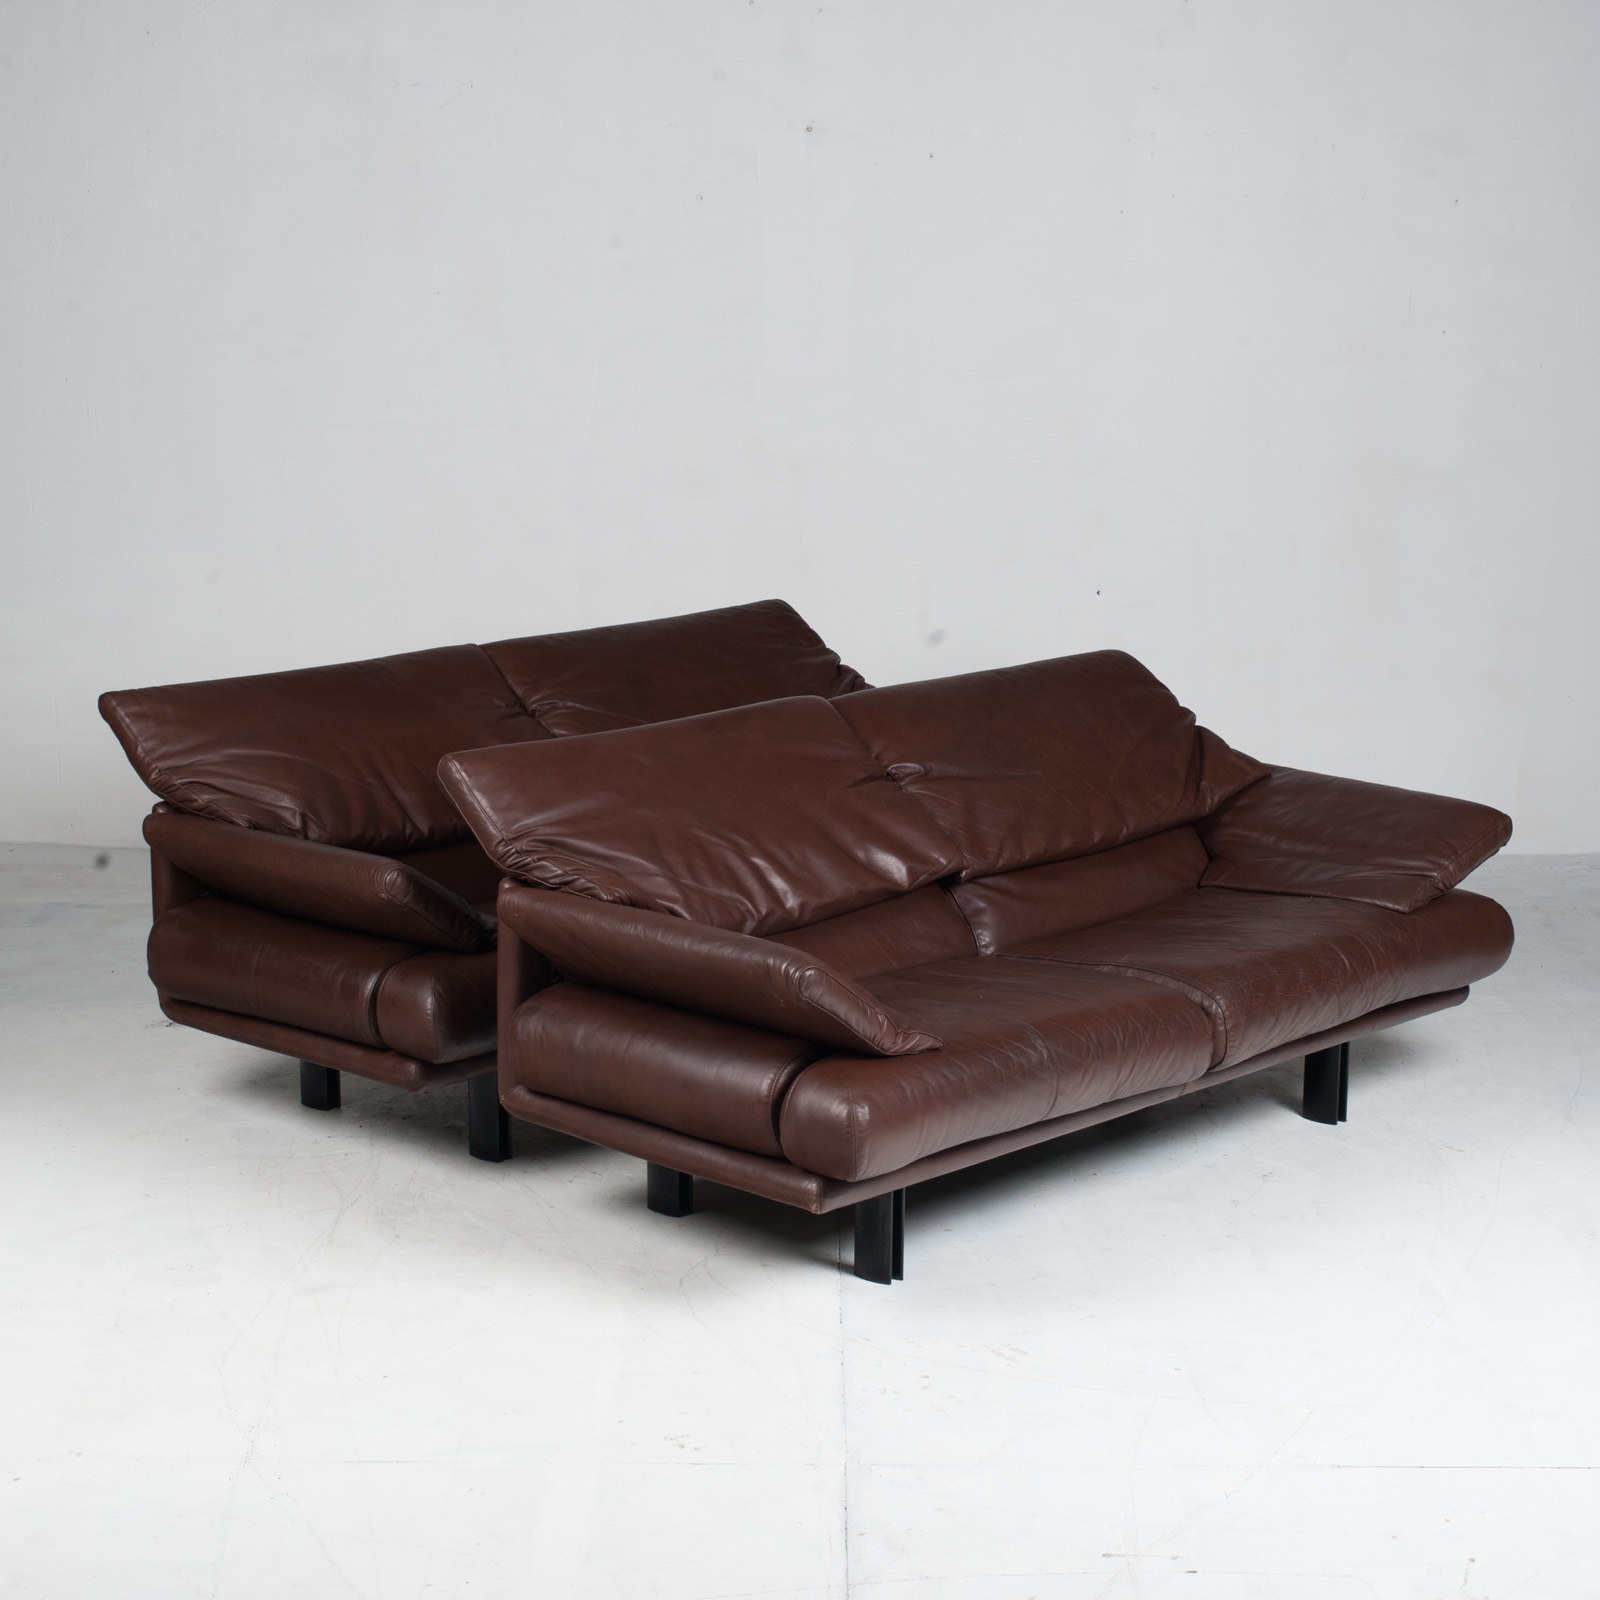 Alanda Sofa By Paolo Piva For B&b Italia In Burgundy Leather 1980s Italy 20